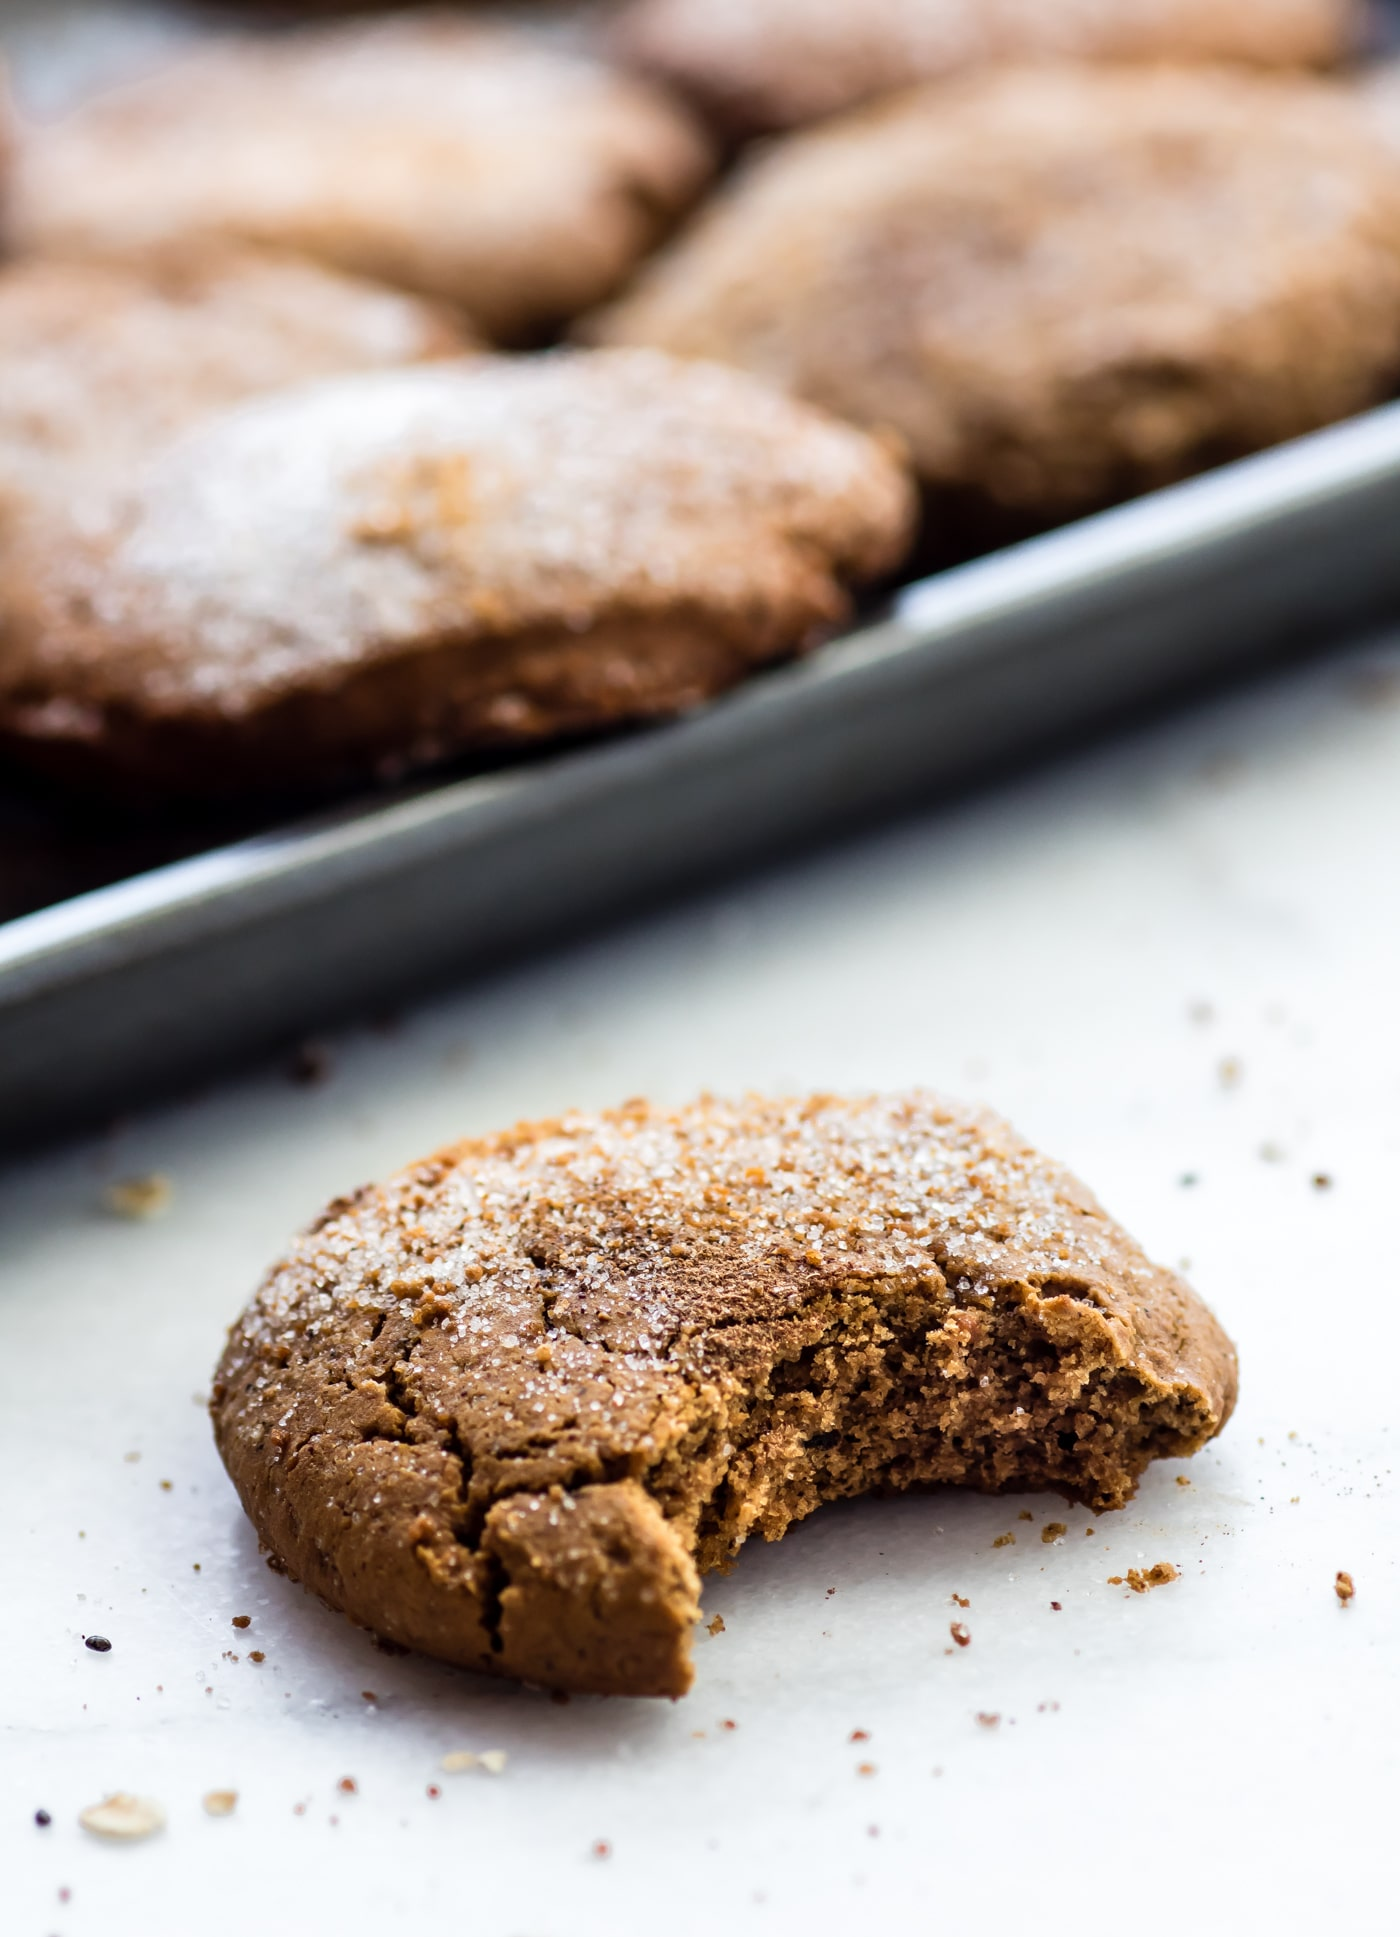 gluten free Brown Butter Snickerdoodle cookie with a bite taken out of it